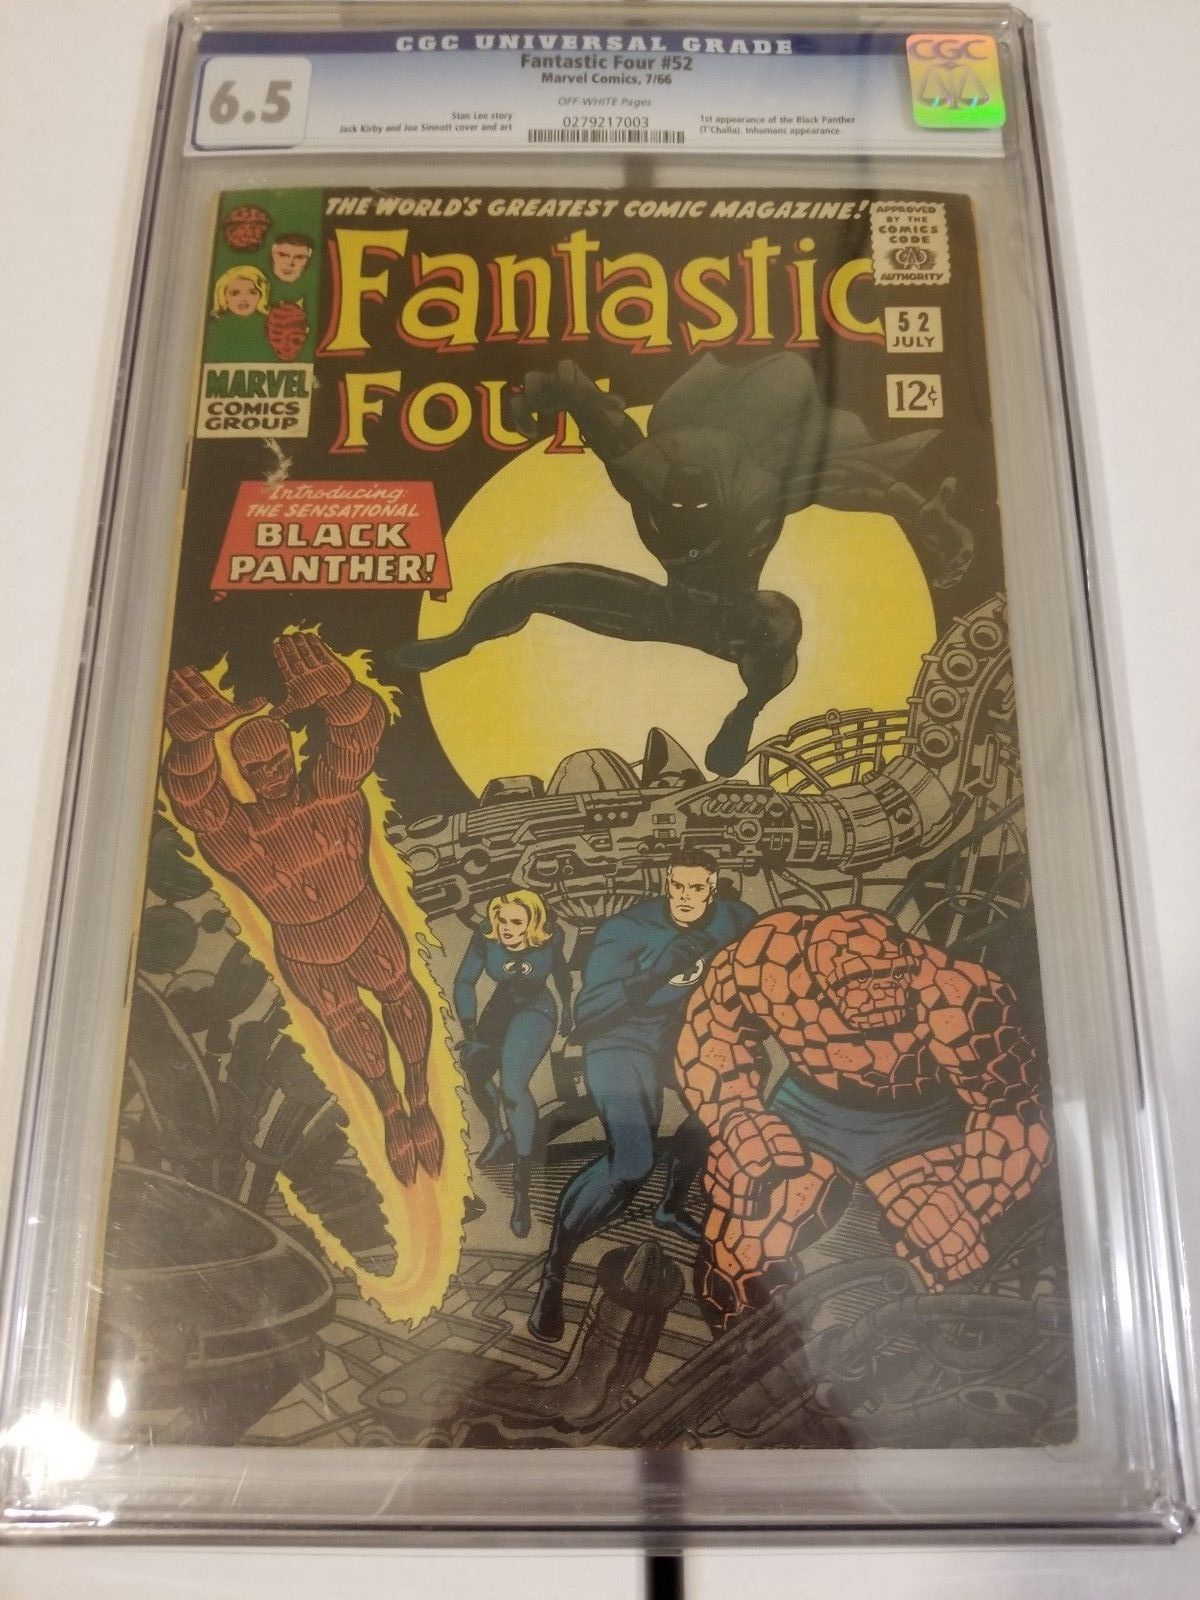 FANTASTIC FOUR #52 CGC 6.5 MARVEL 1966   1ST BLACK PANTHER T'CHALLA